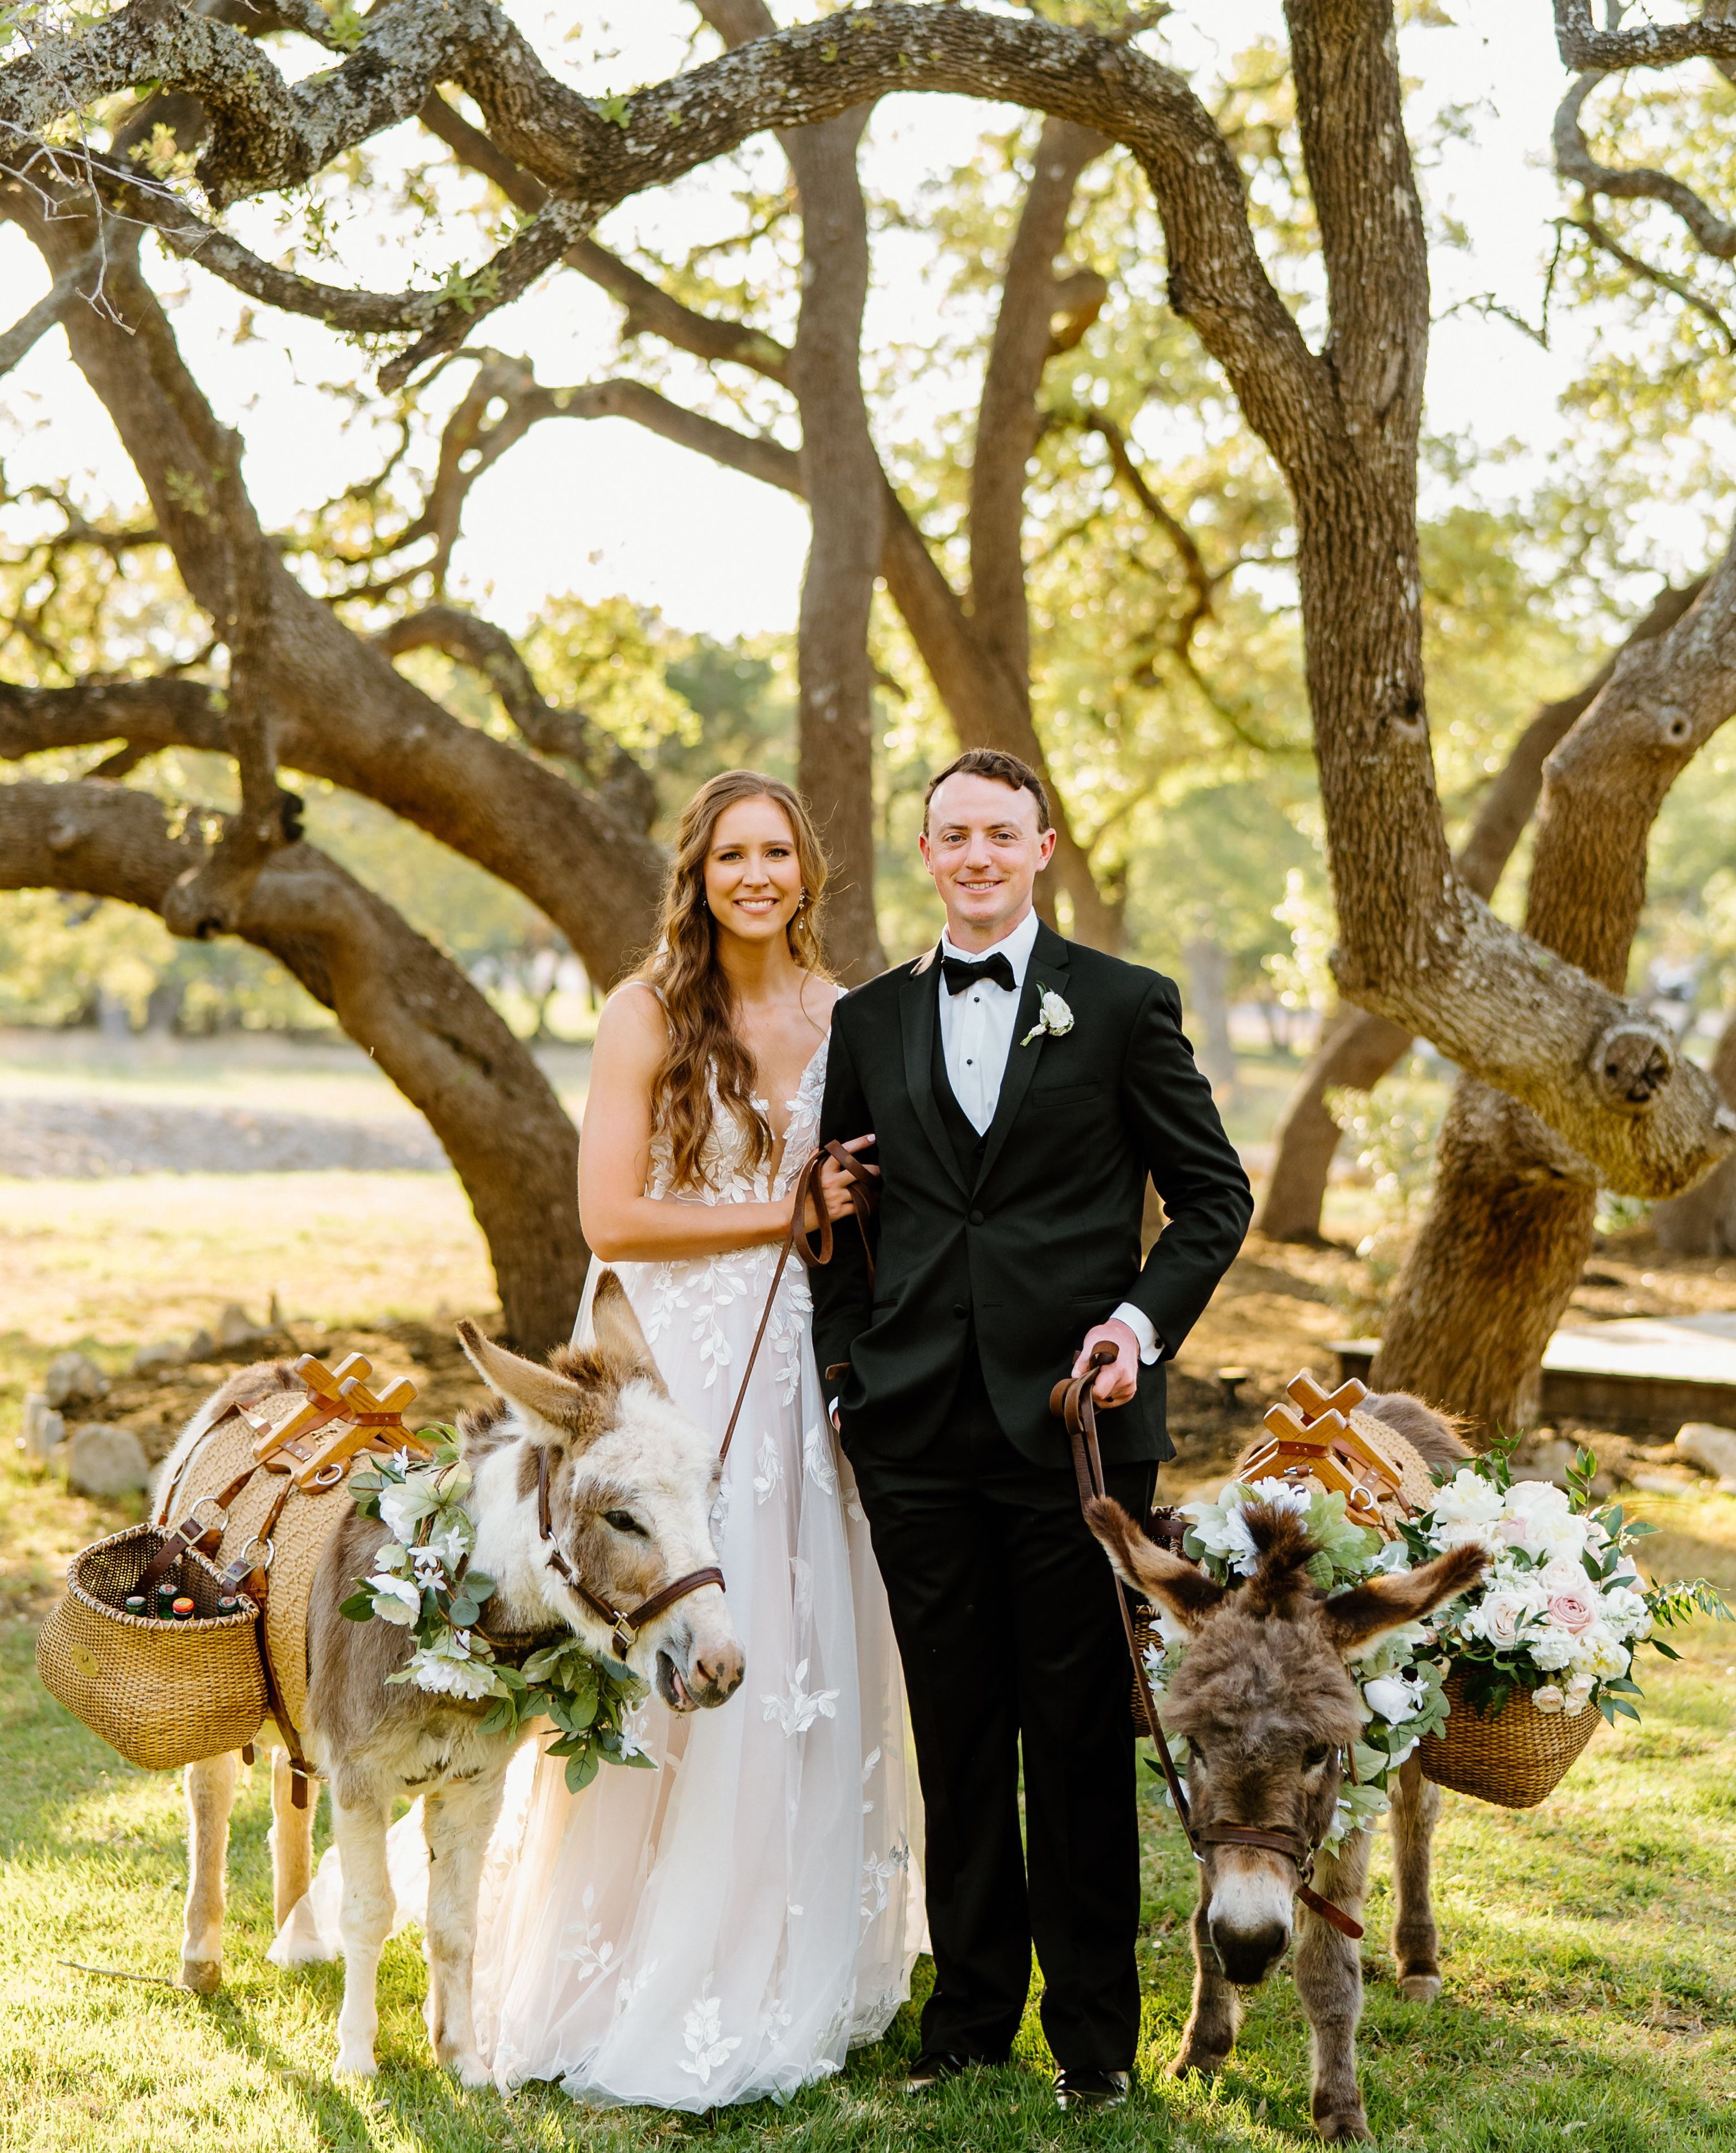 A smiling bride and groom are flanked by two floral adorned beer burros with a towering oak tree behind them.